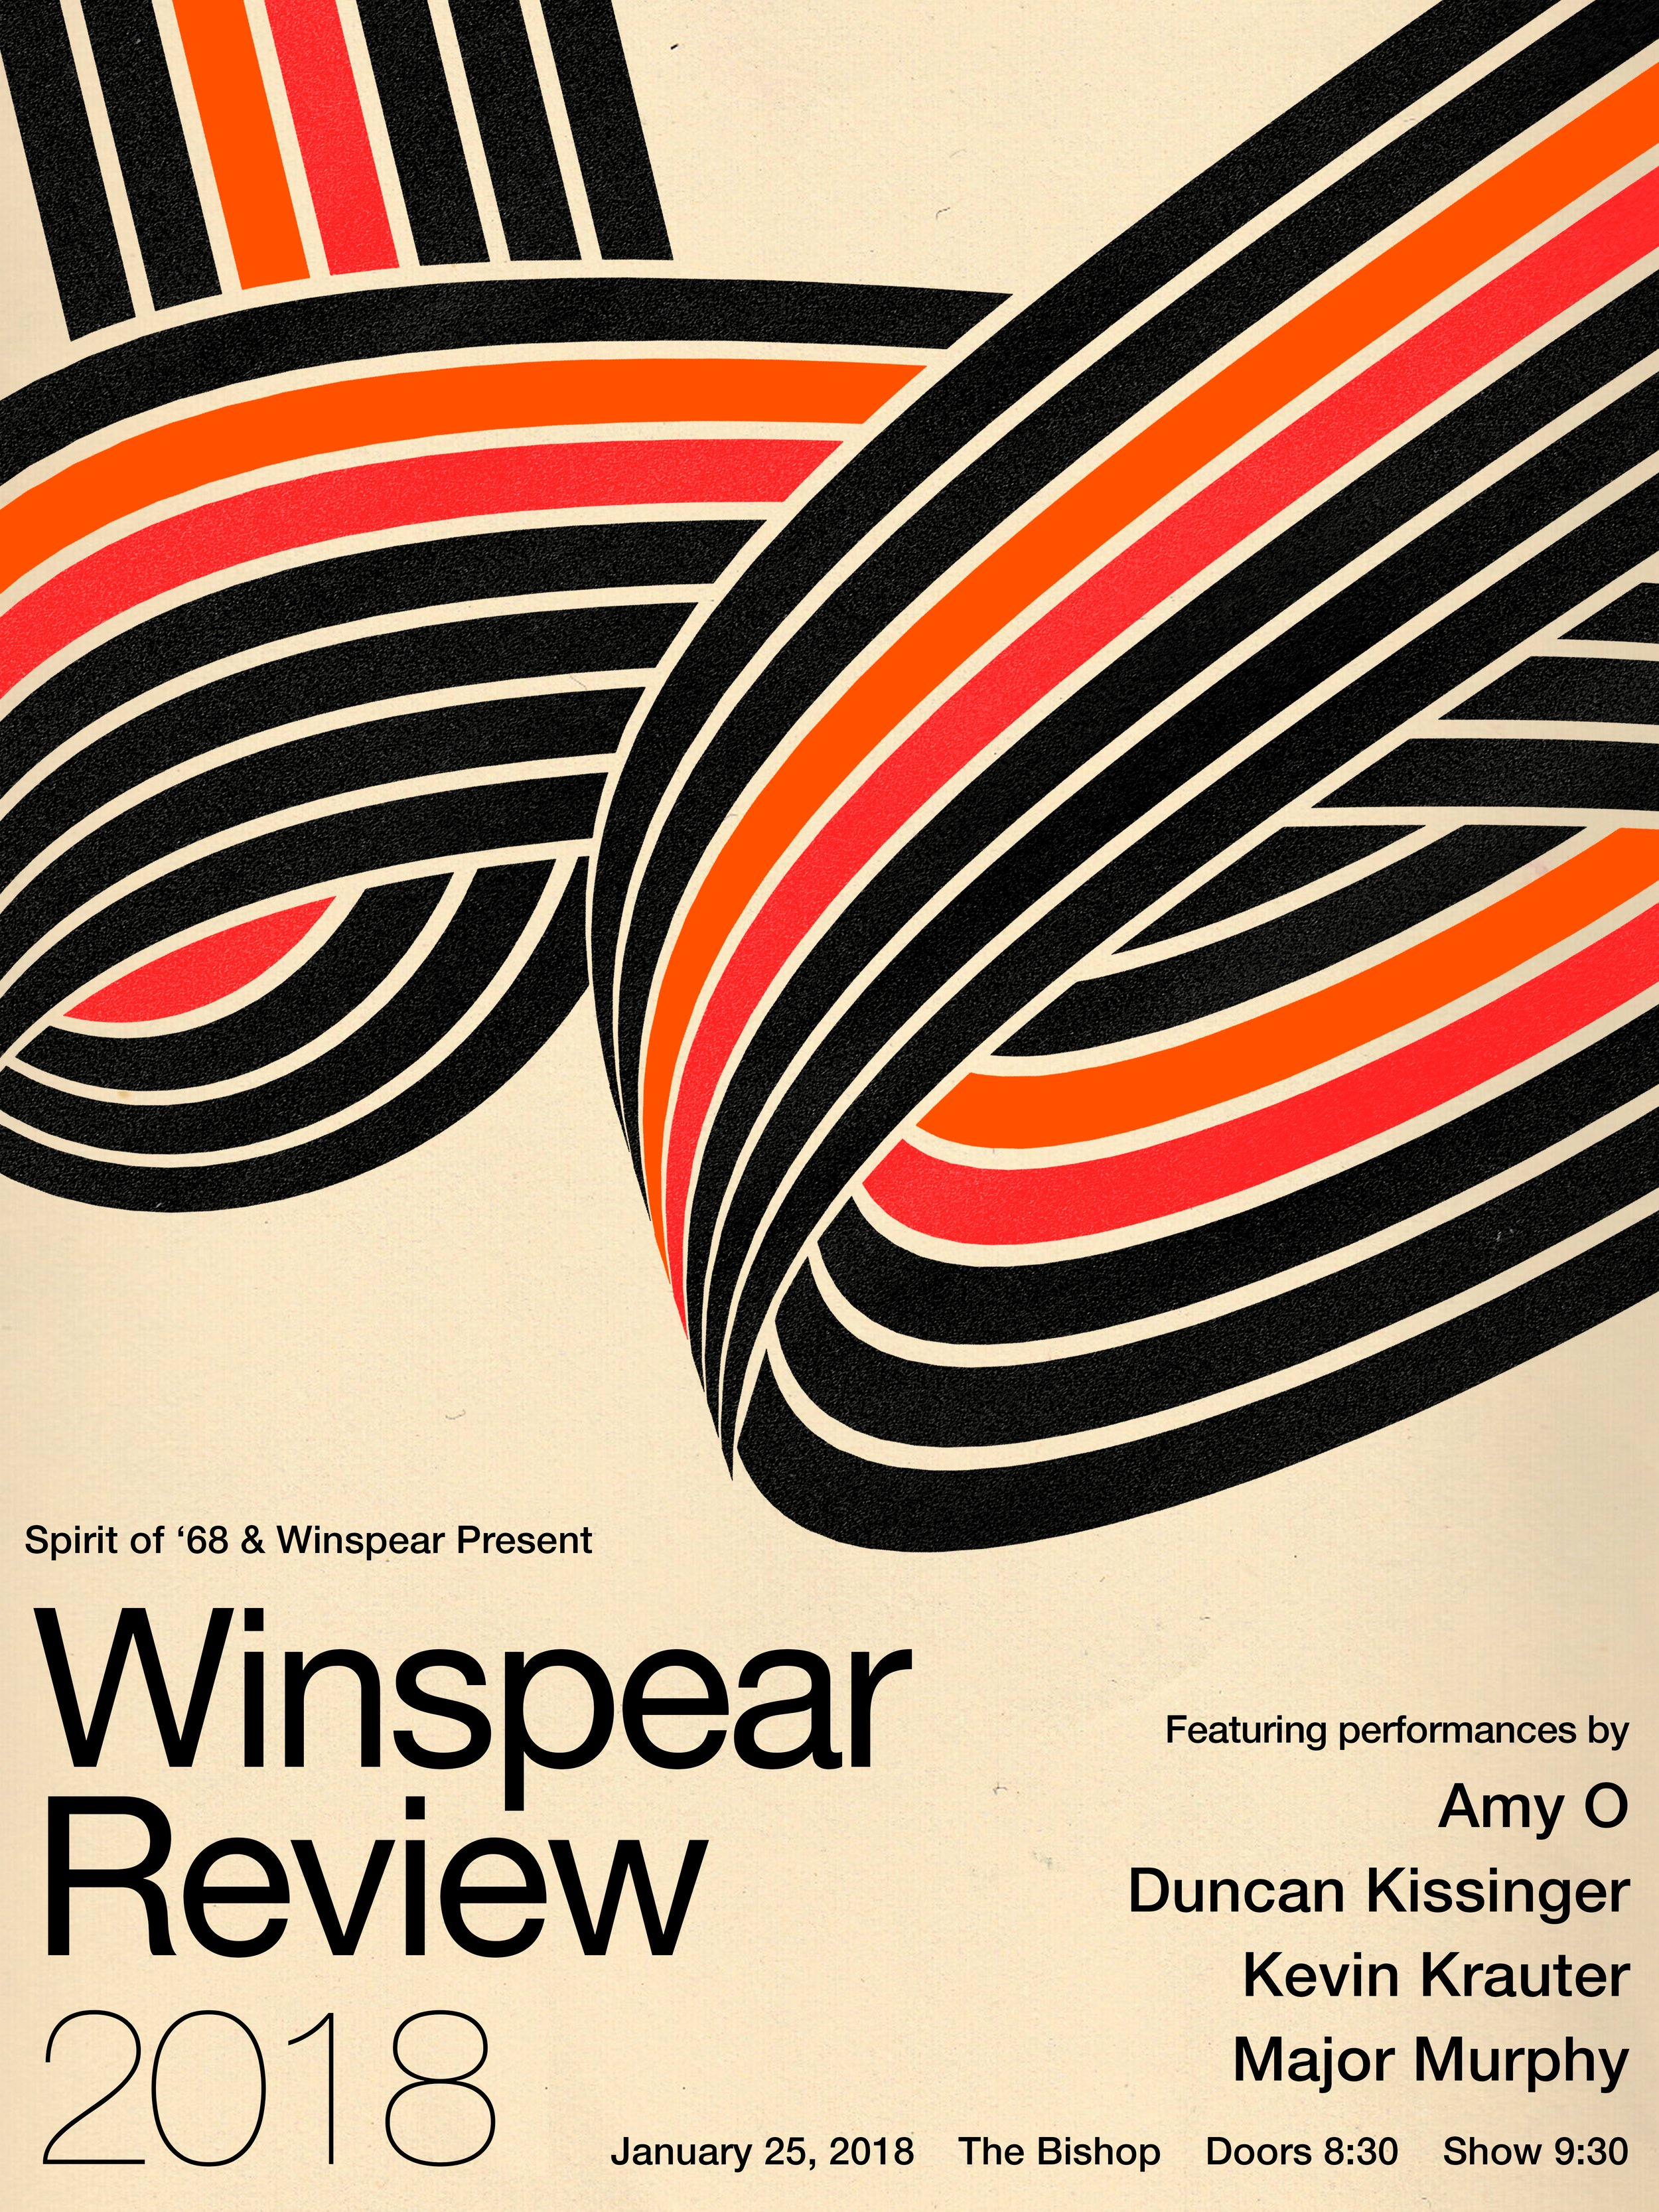 _Winspear Review 2018 (Revision 2).jpg